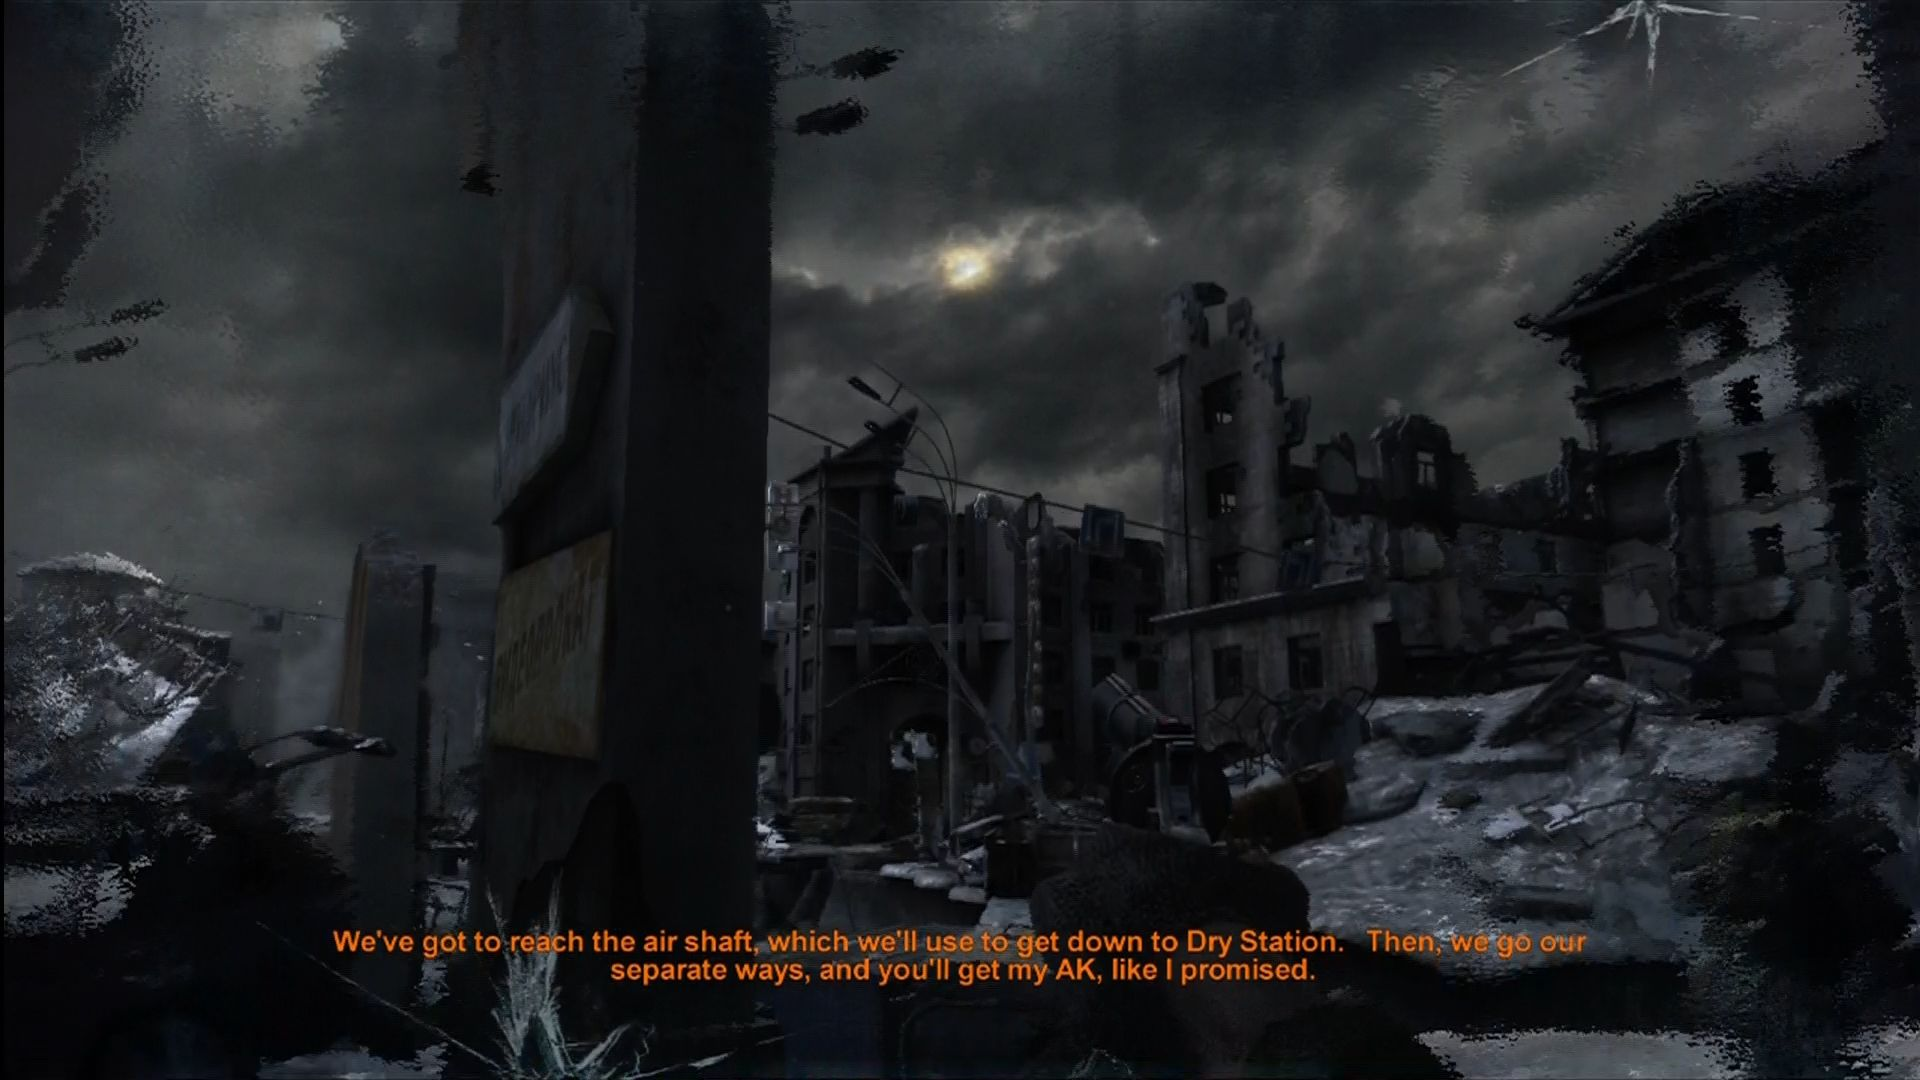 Metro 2033 Xbox 360 Out on the surface. Desolate and contaminated.